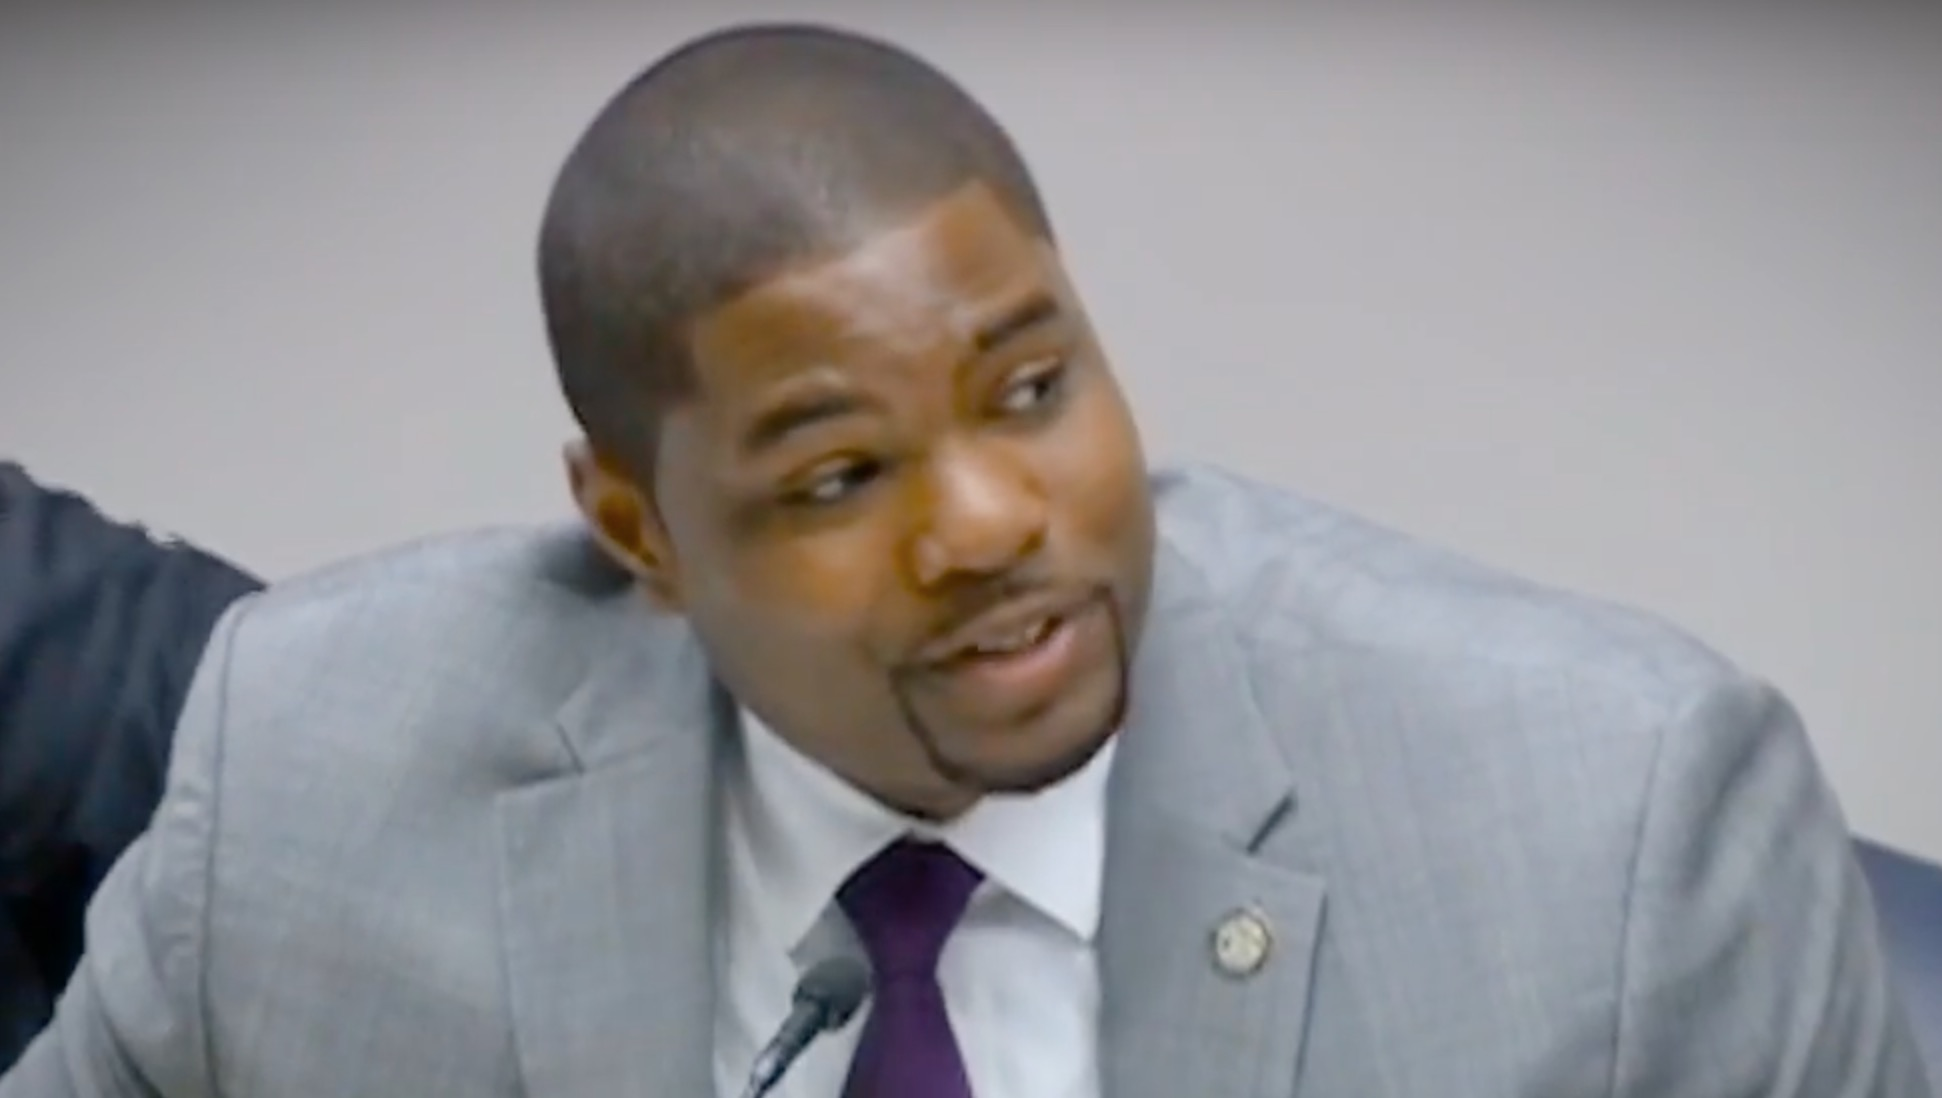 State Rep Byron Donalds draws first Democratic challenger